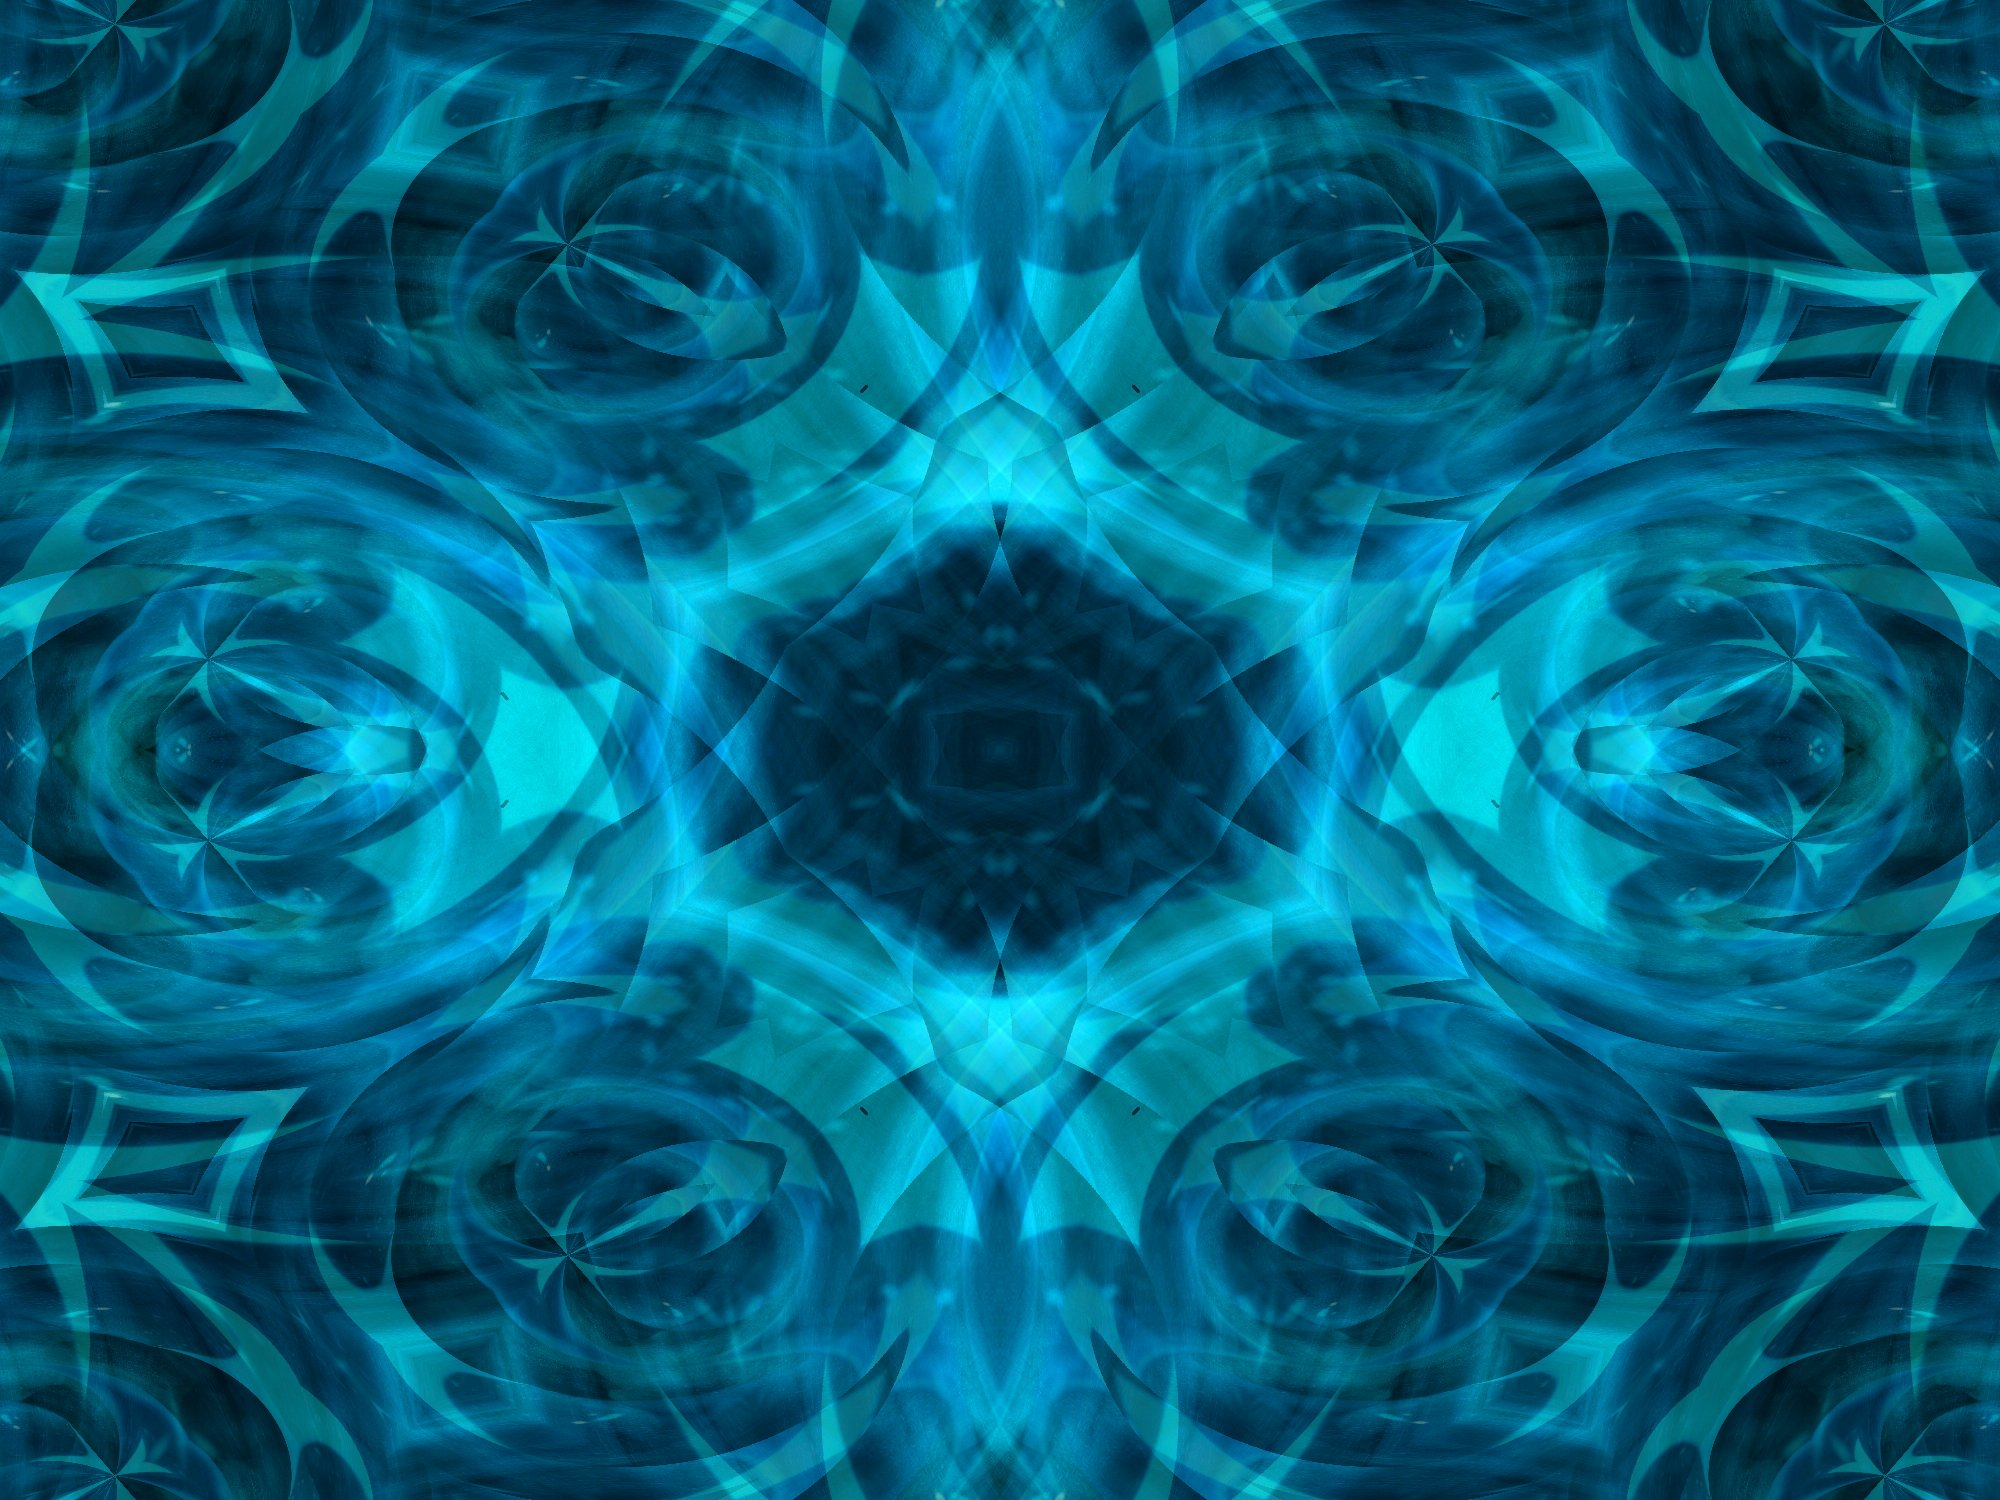 Lava texture bing images - Blue Lava Lamp Texture 19 By Fantasystock On Deviantart